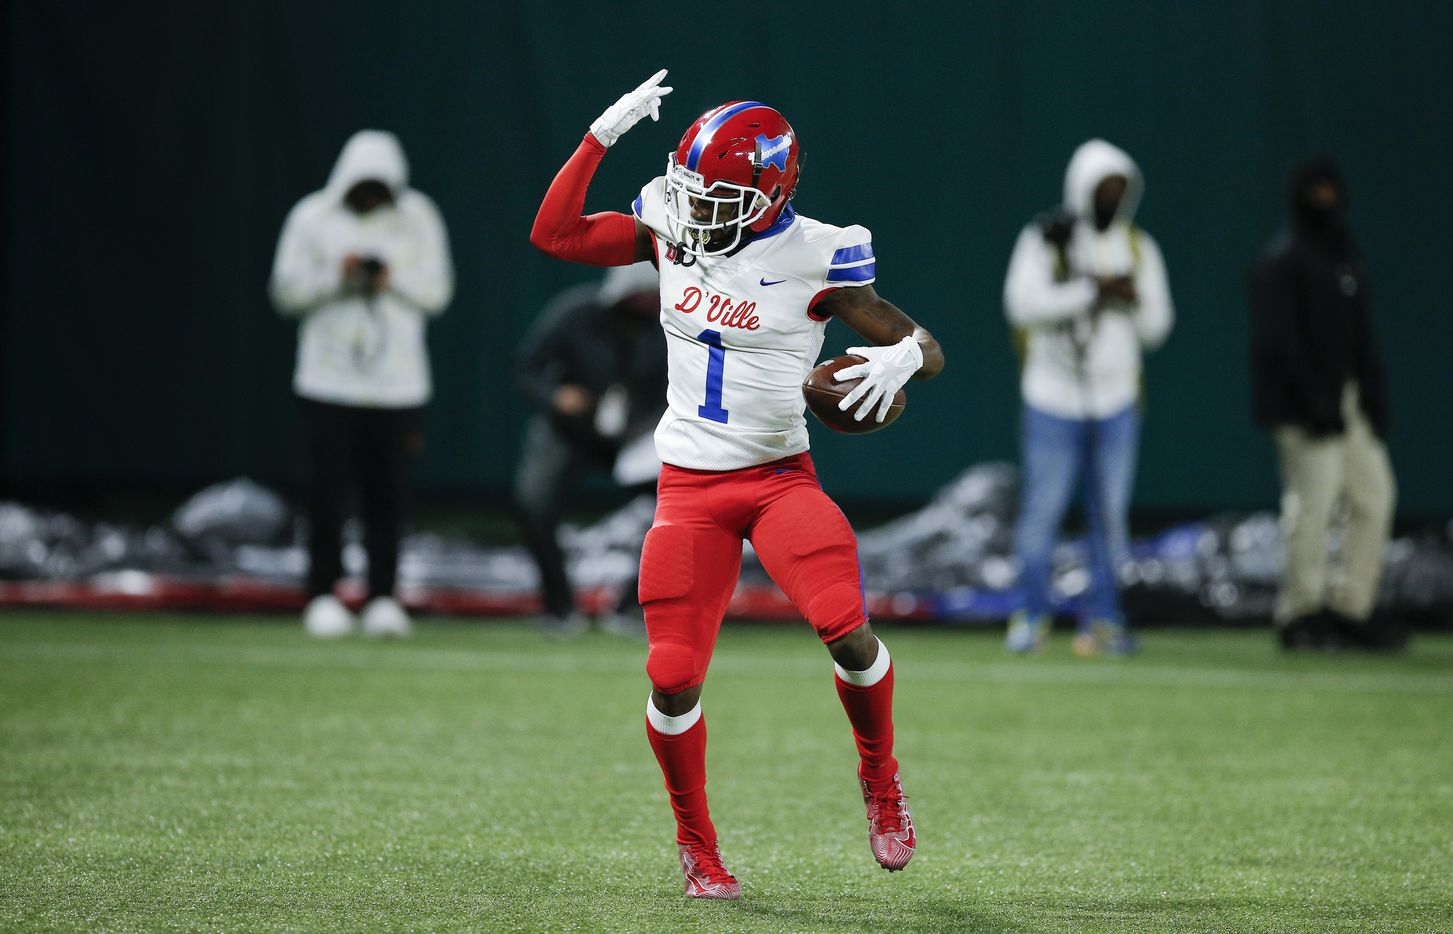 Duncanville senior running back Chris Hicks celebrates a touchdown during the first half of a Class 6A Division I Region II final high school football game against DeSoto, Saturday, January 2, 2021. (Brandon Wade/Special Contributor)